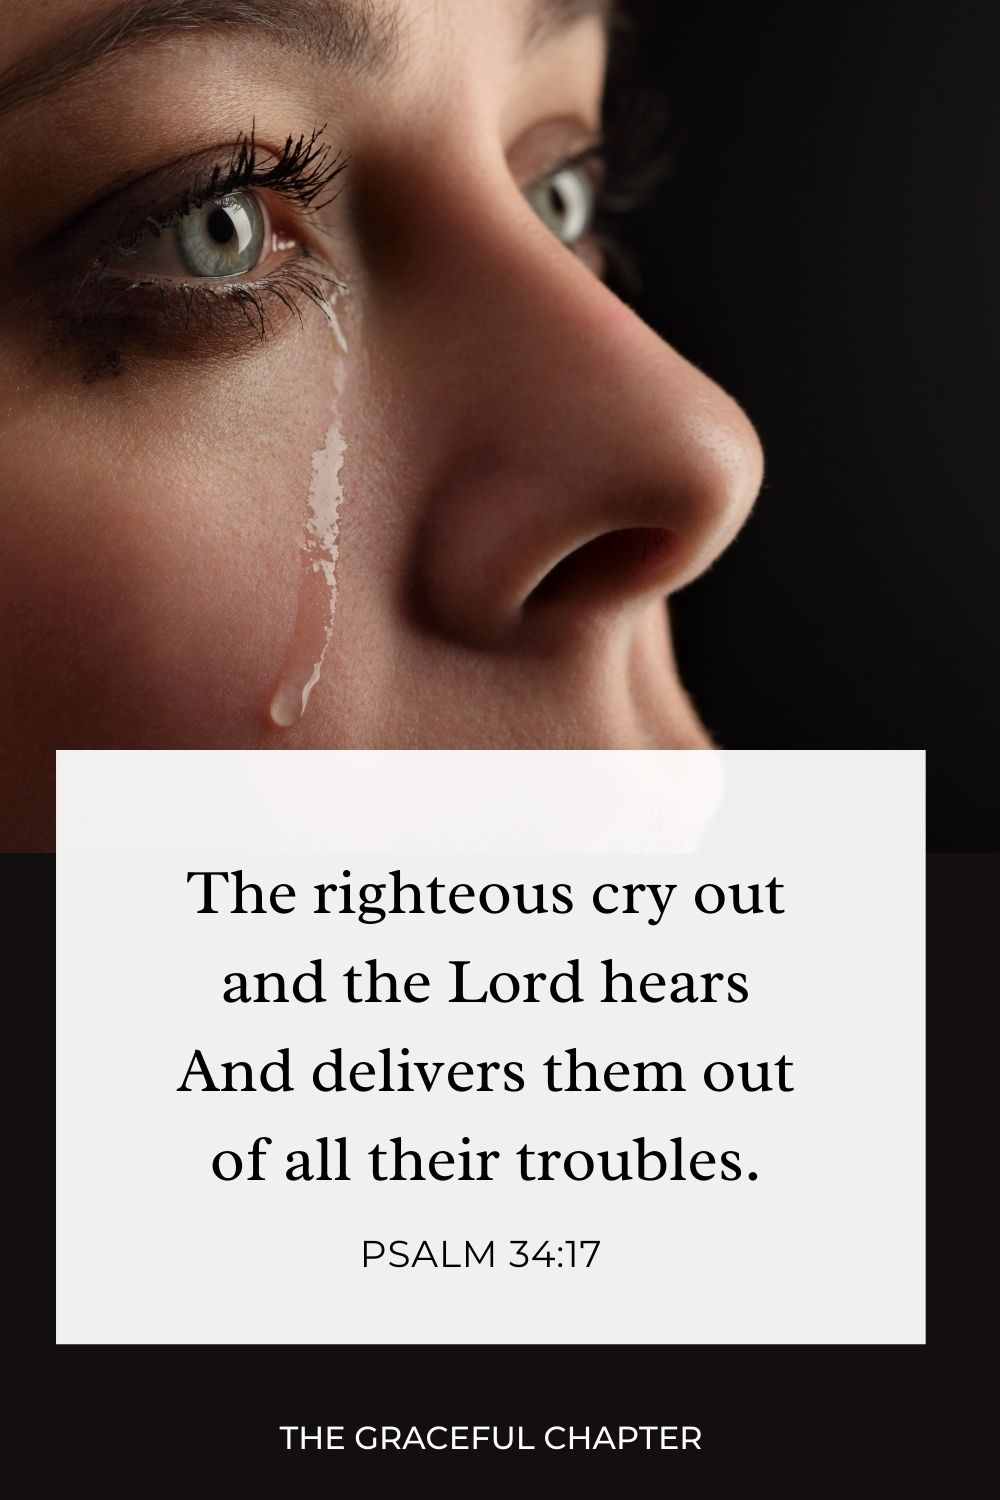 The righteous cry out, and the Lord hears, And delivers them out of all their troubles. Psalm 34:17